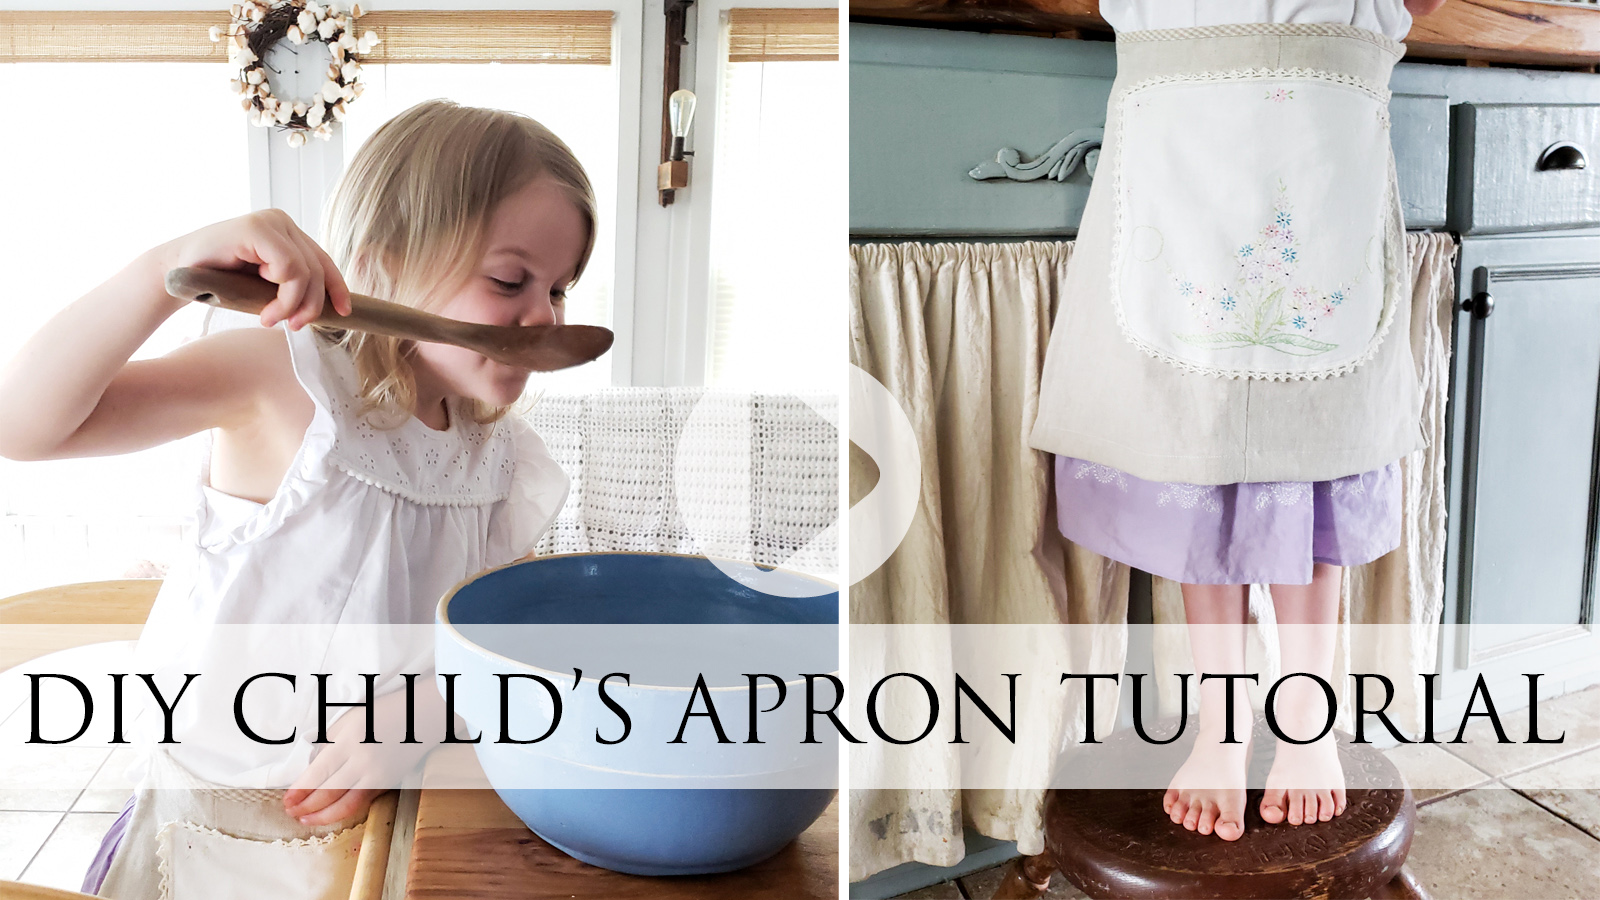 Video Tutorial for DIY Child's Apron from a Refashioned Skirt by Larissa of Prodigal Pieces | prodigalpieces.com #prodigalpieces